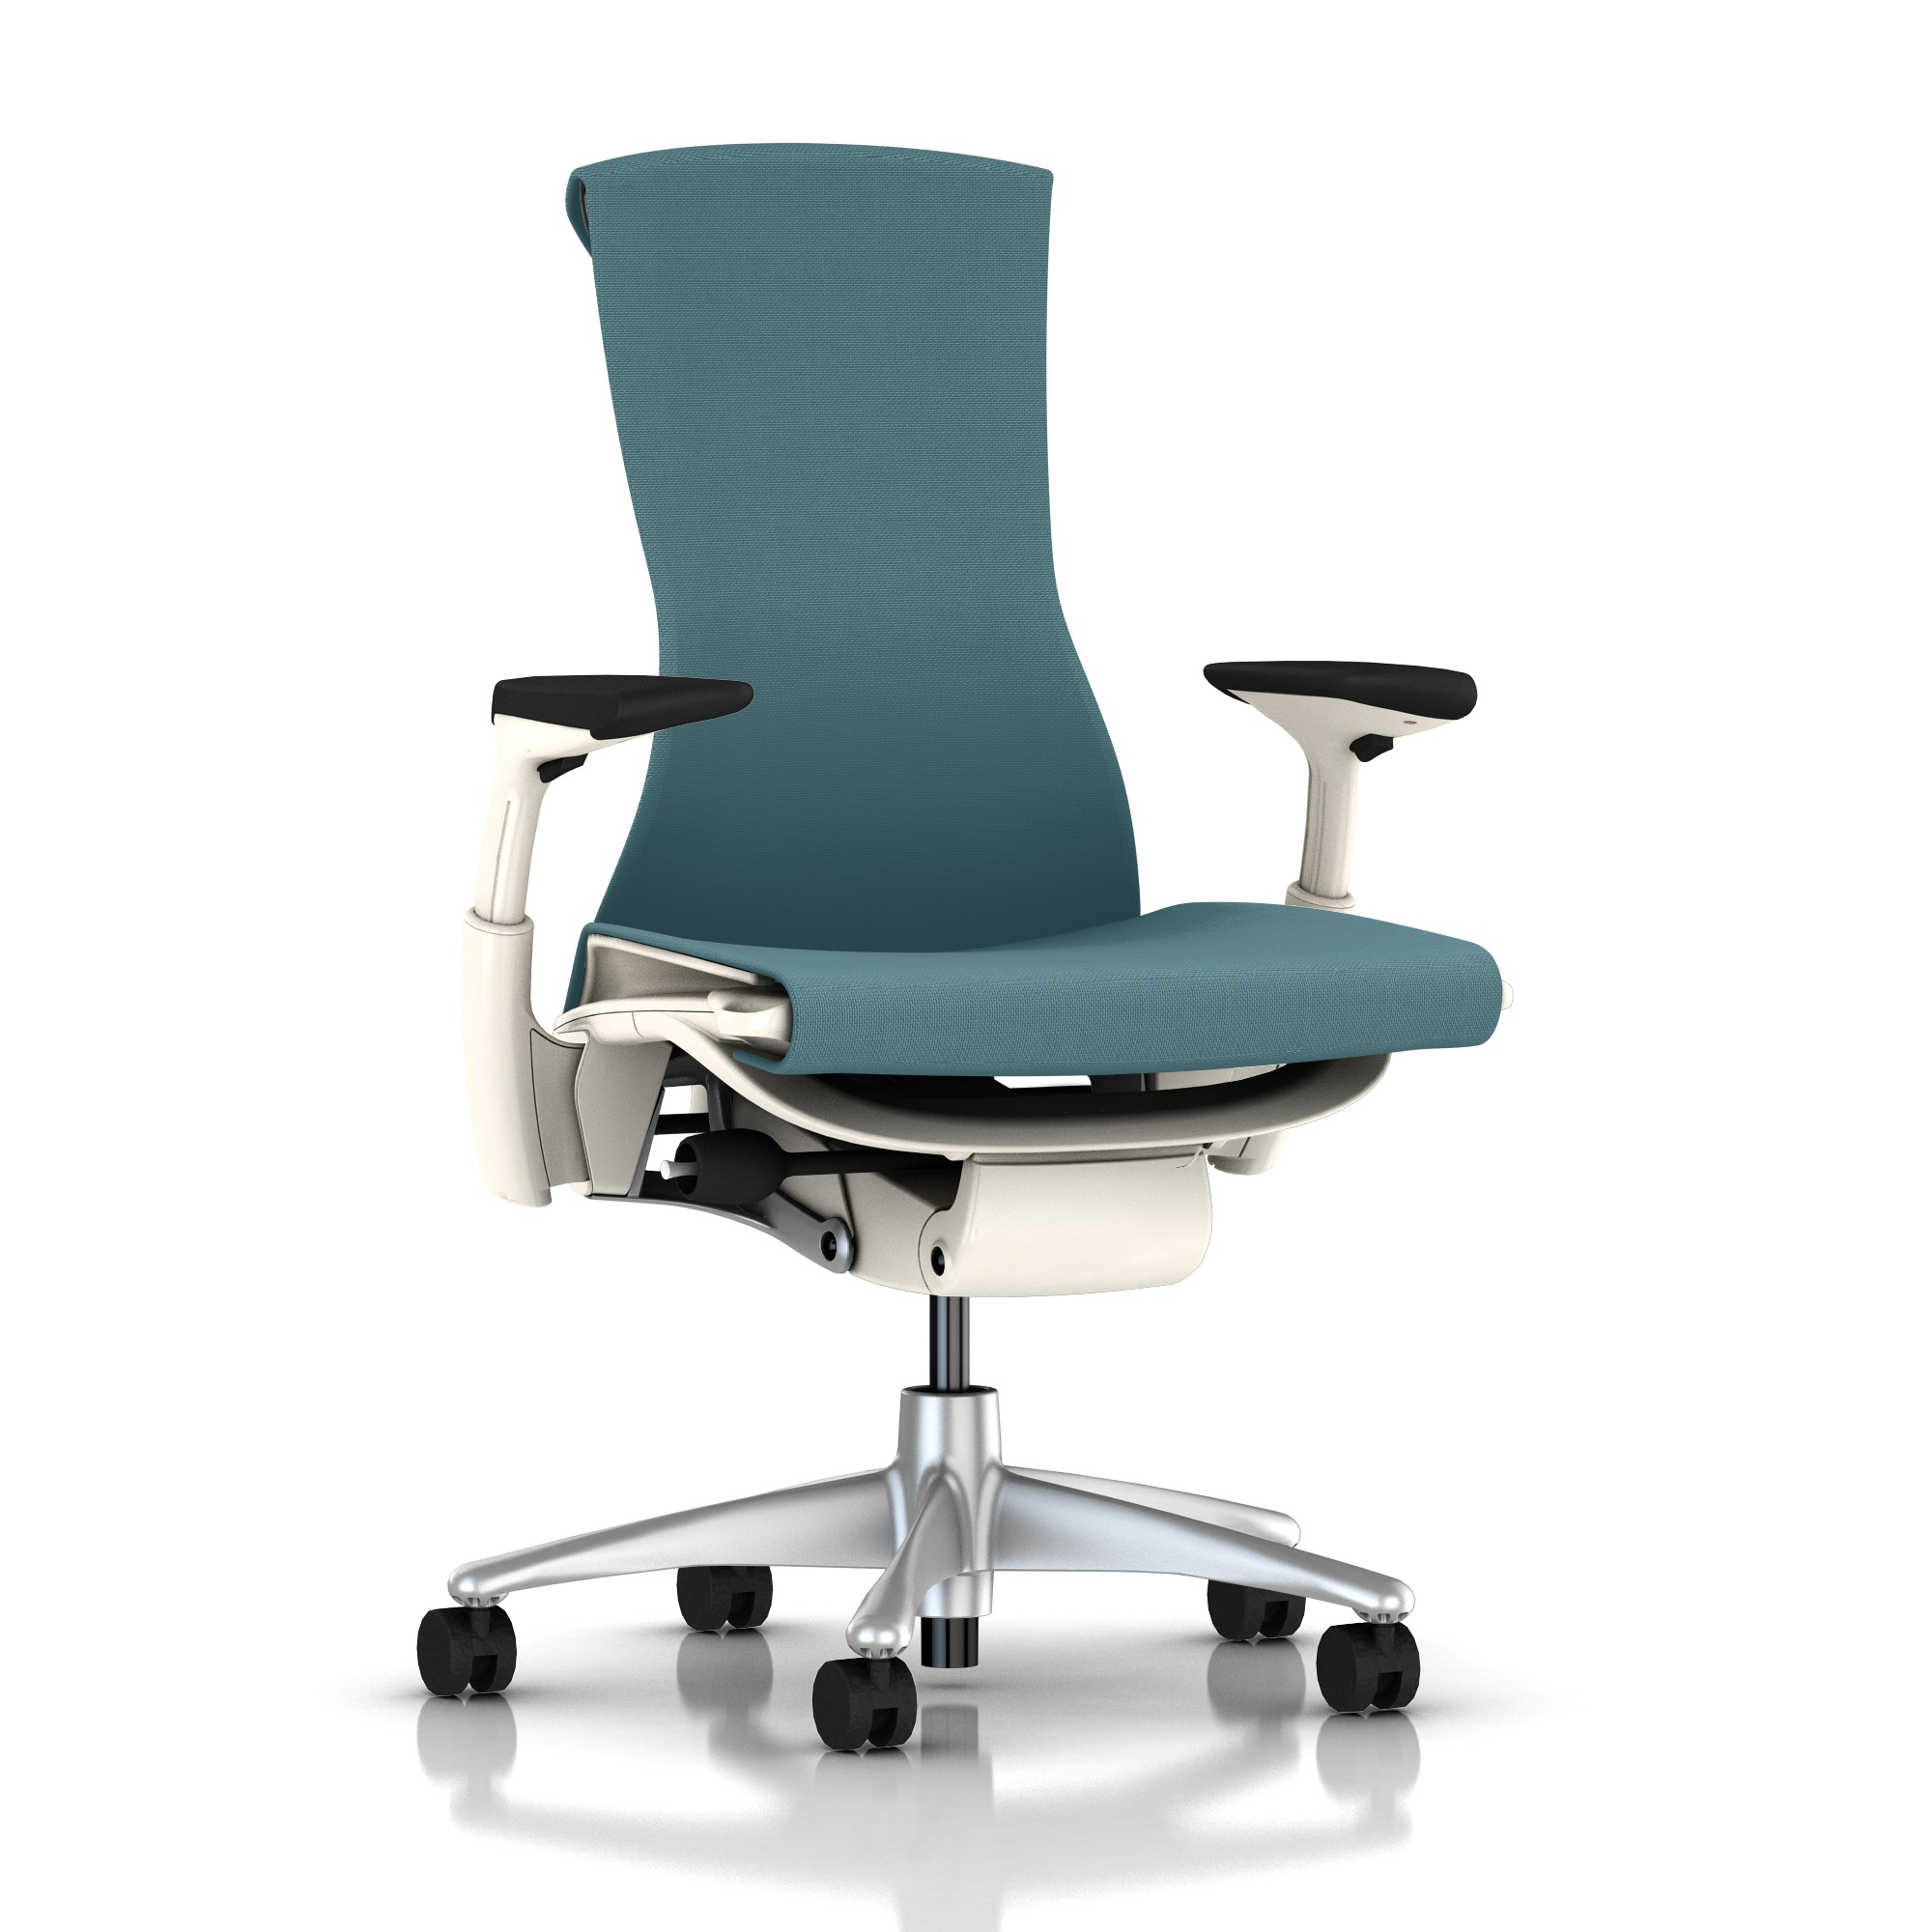 NEW - Embody Chair (Peacok Medley)